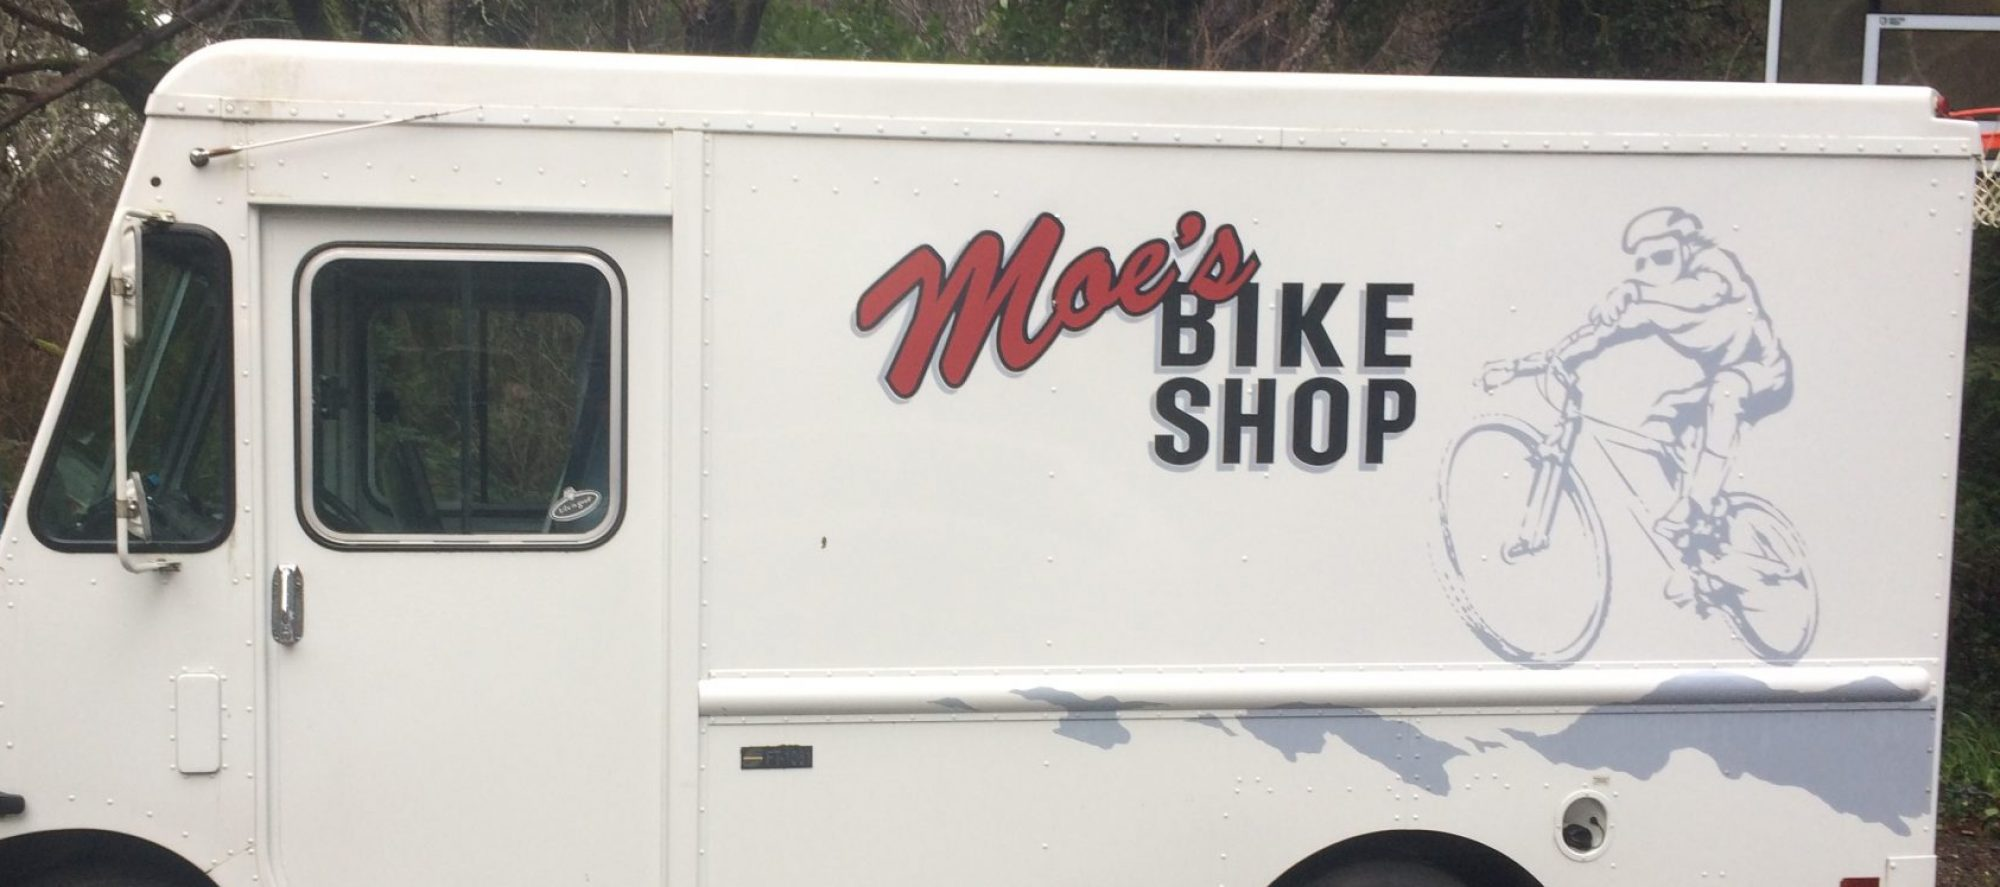 Moe's Bike Shop